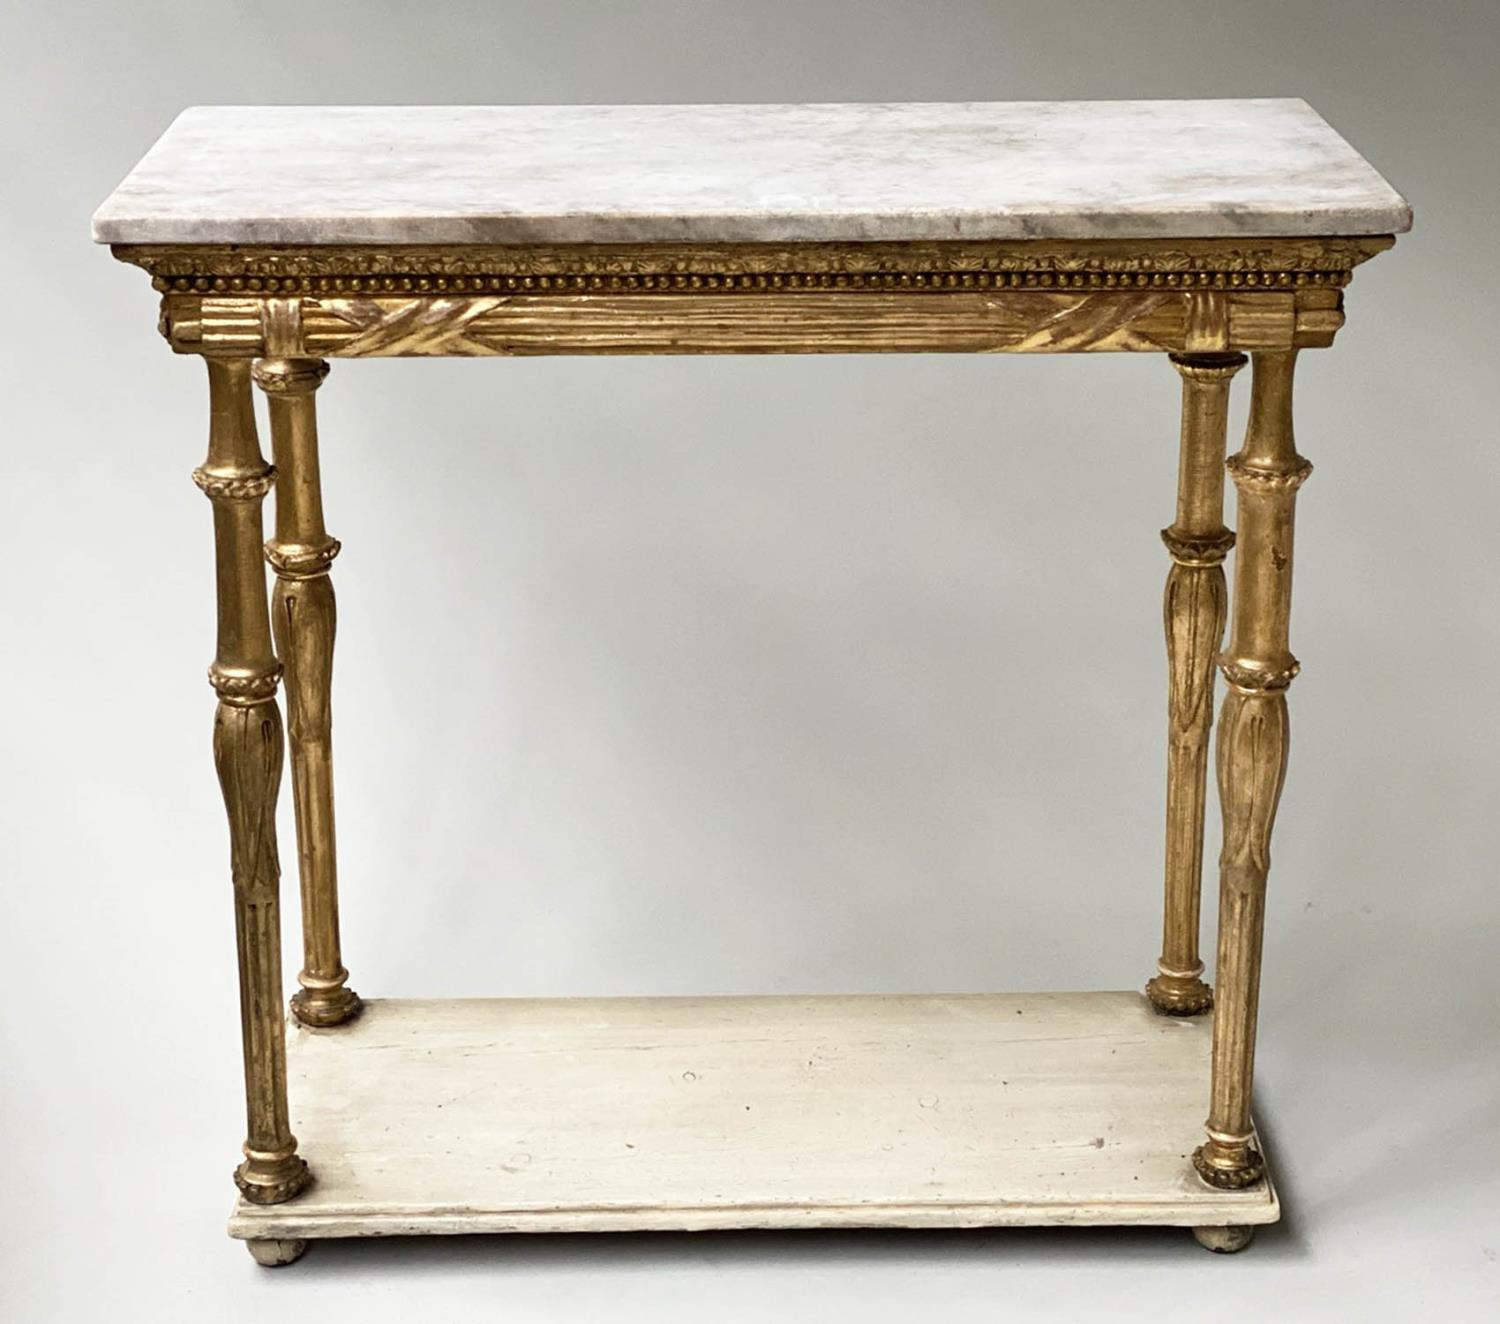 CONSOLE TABLE, early 19th century Italian giltwood with rectangular marble top above lappet and